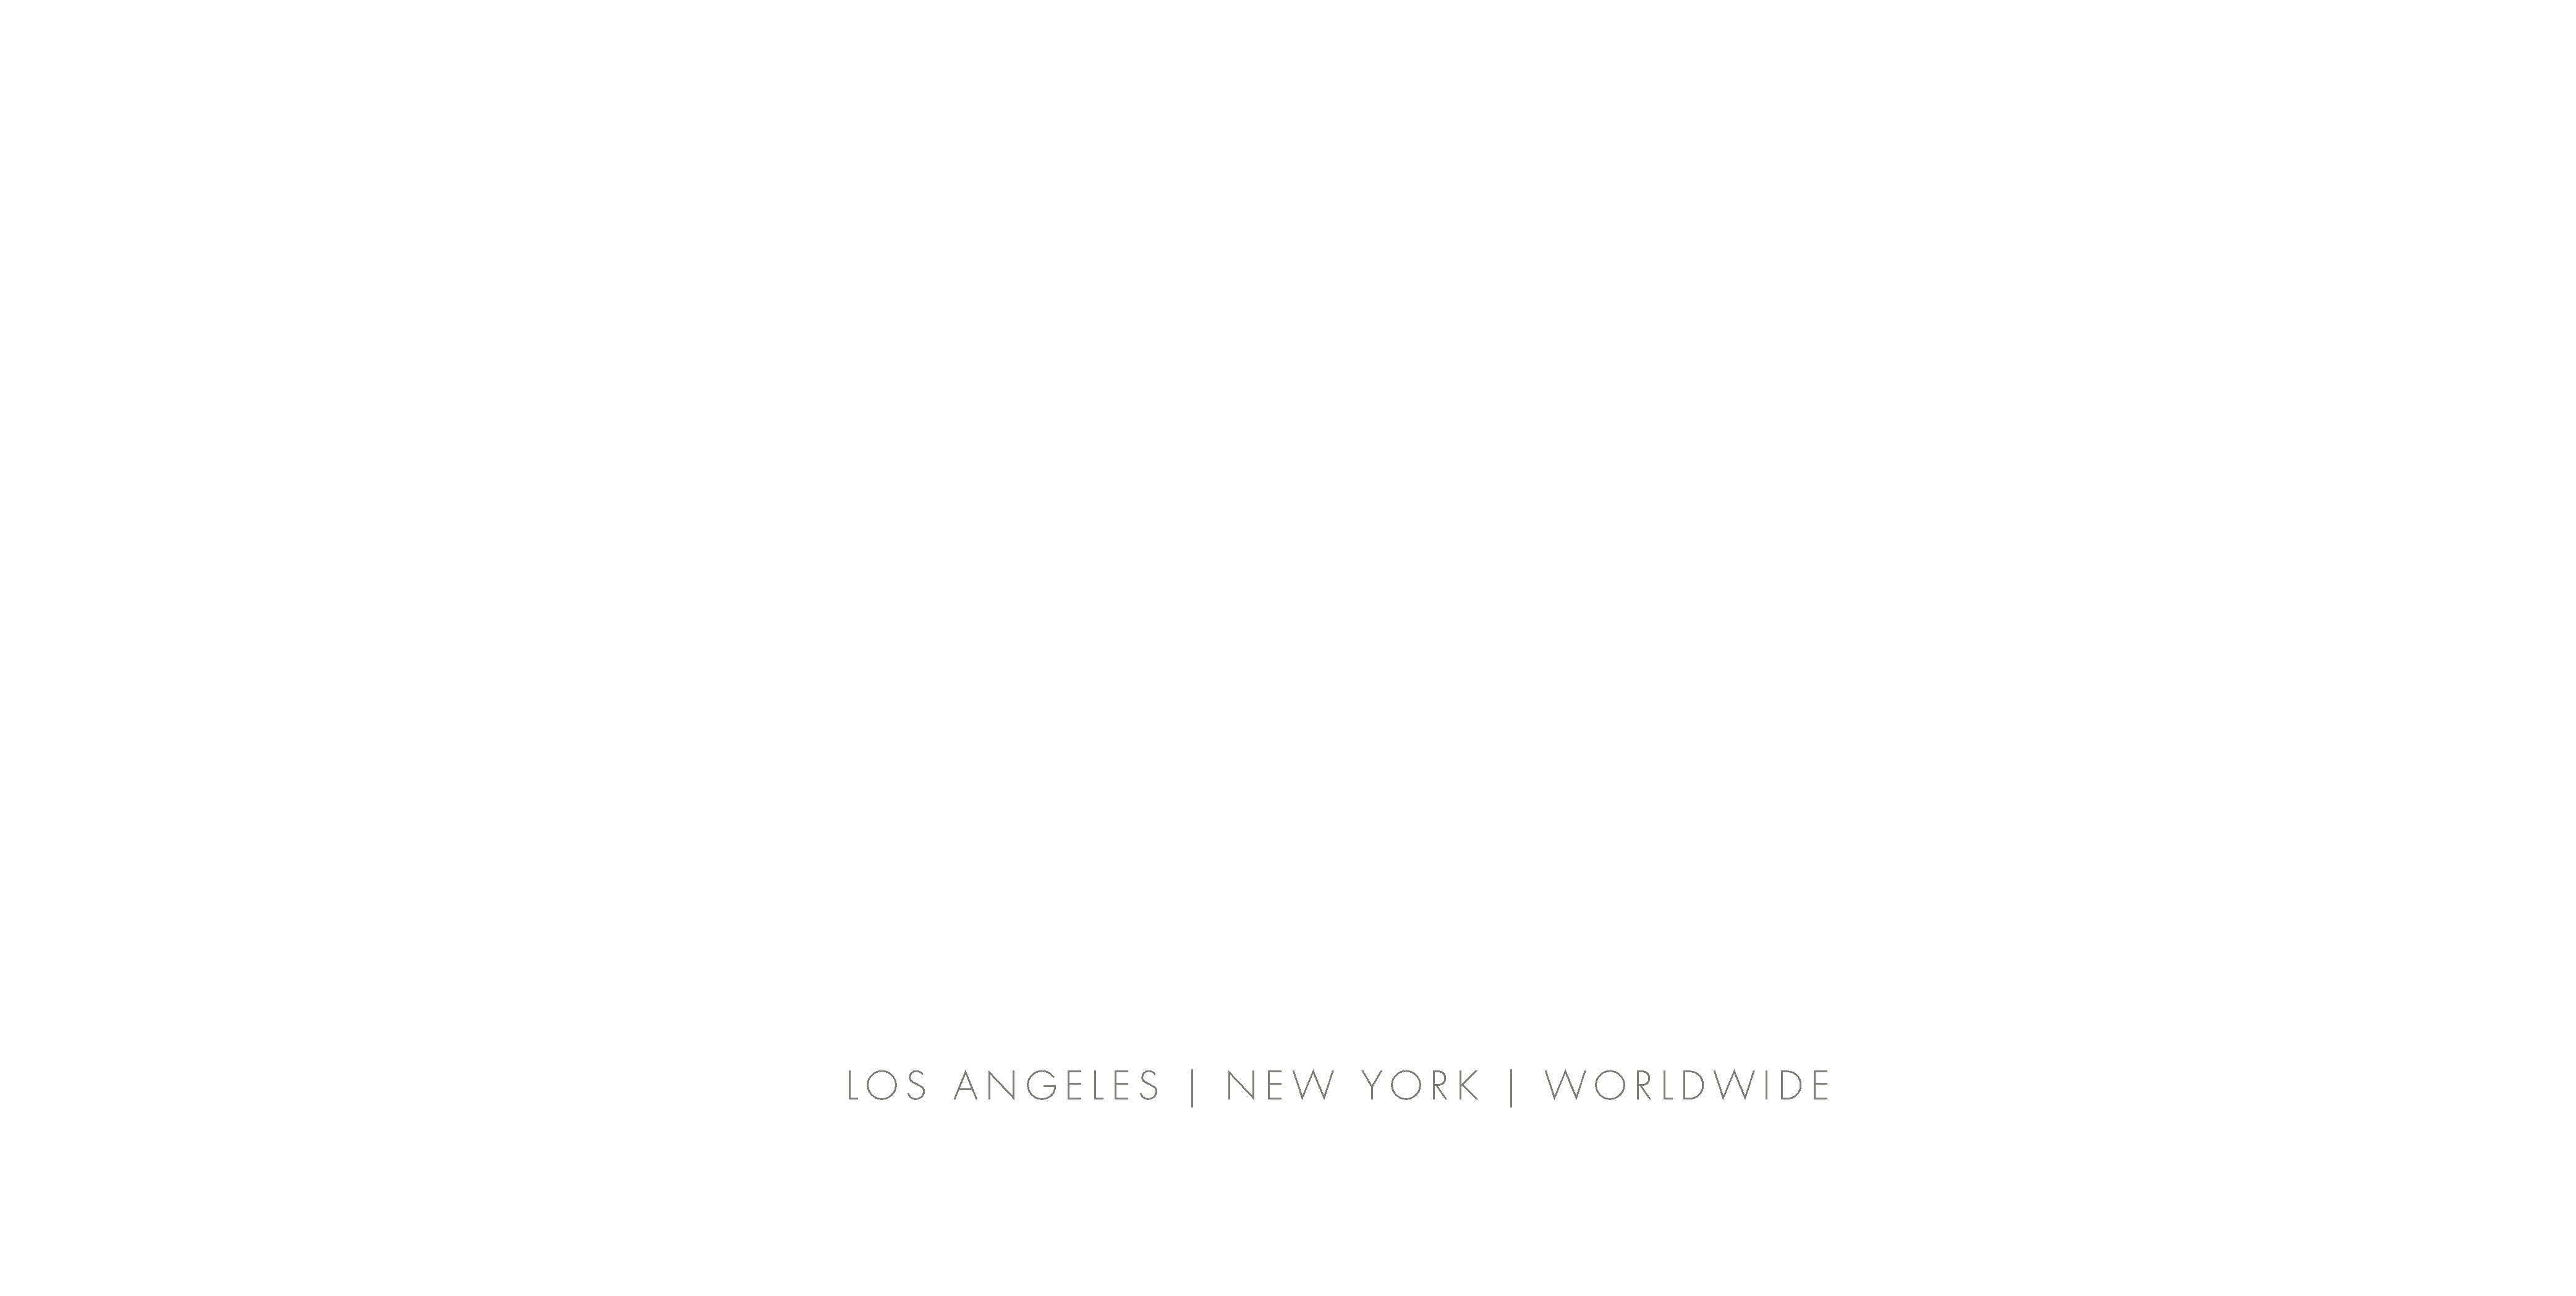 Hannah Arista Photography